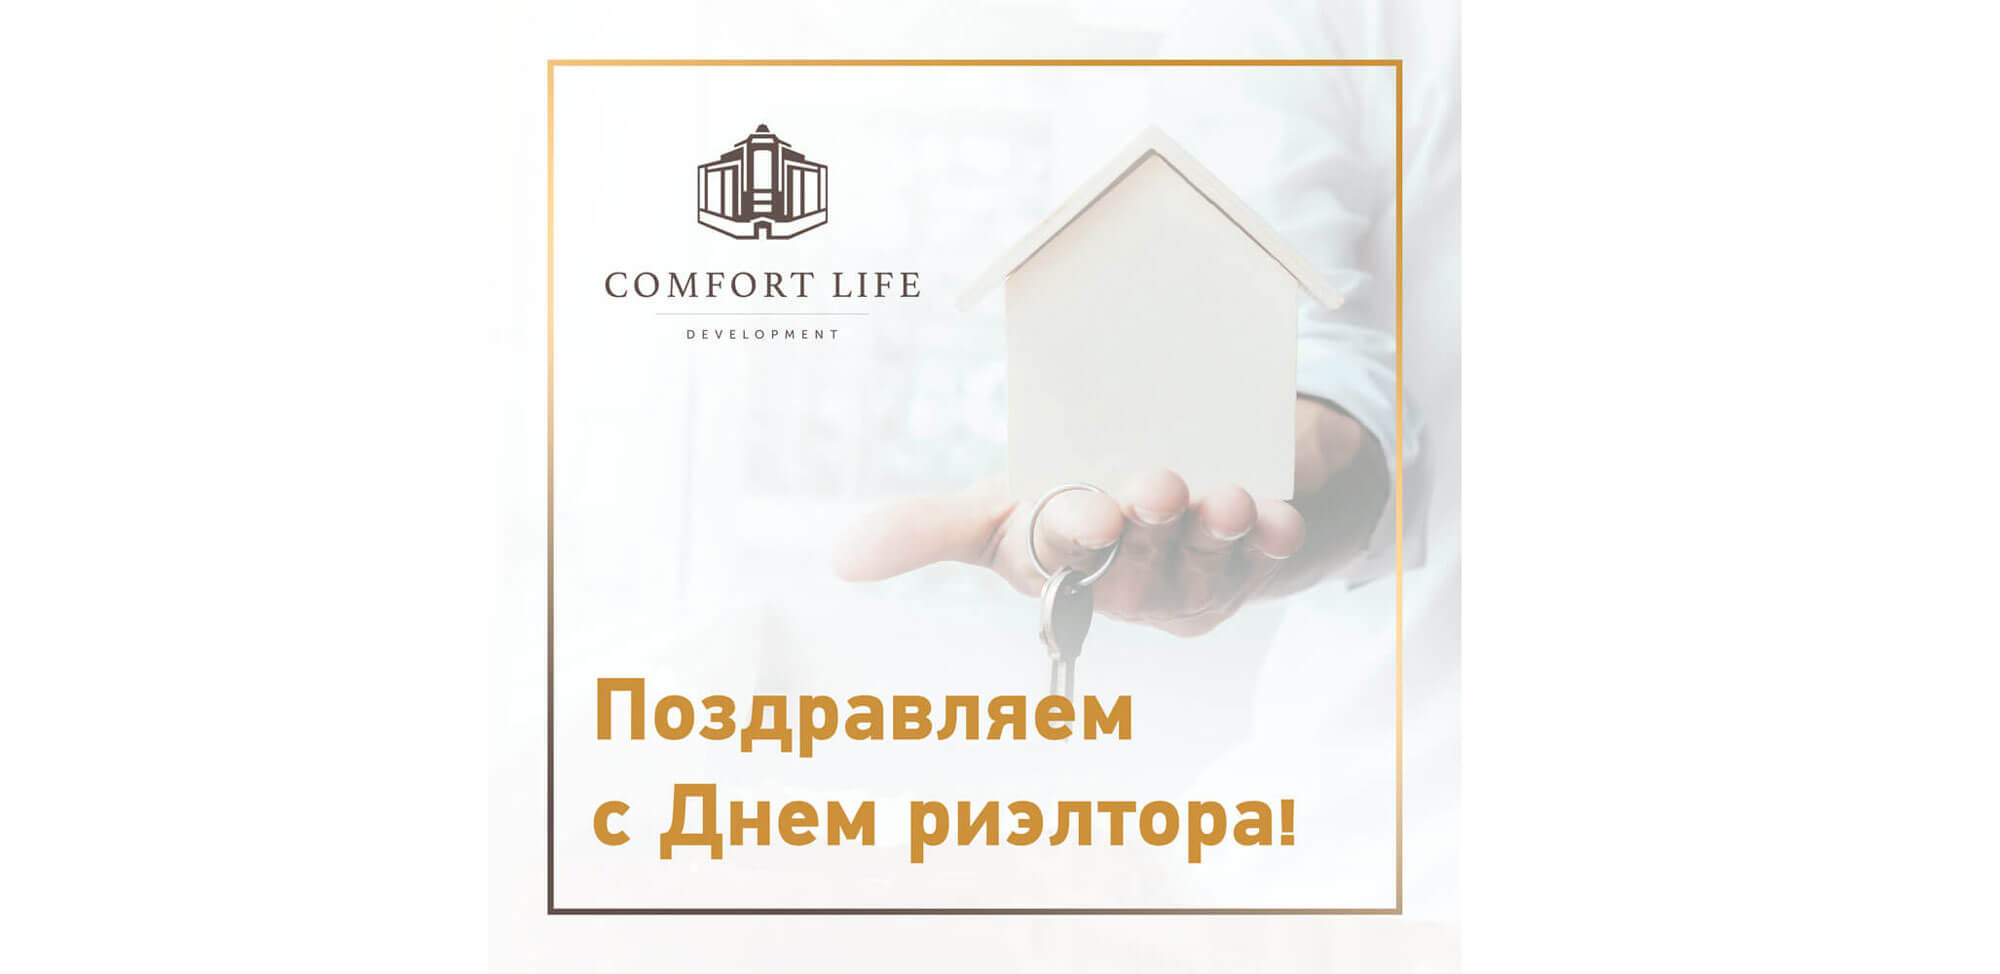 The company Comfort Life Development congratulates all realtors on their professional holiday!